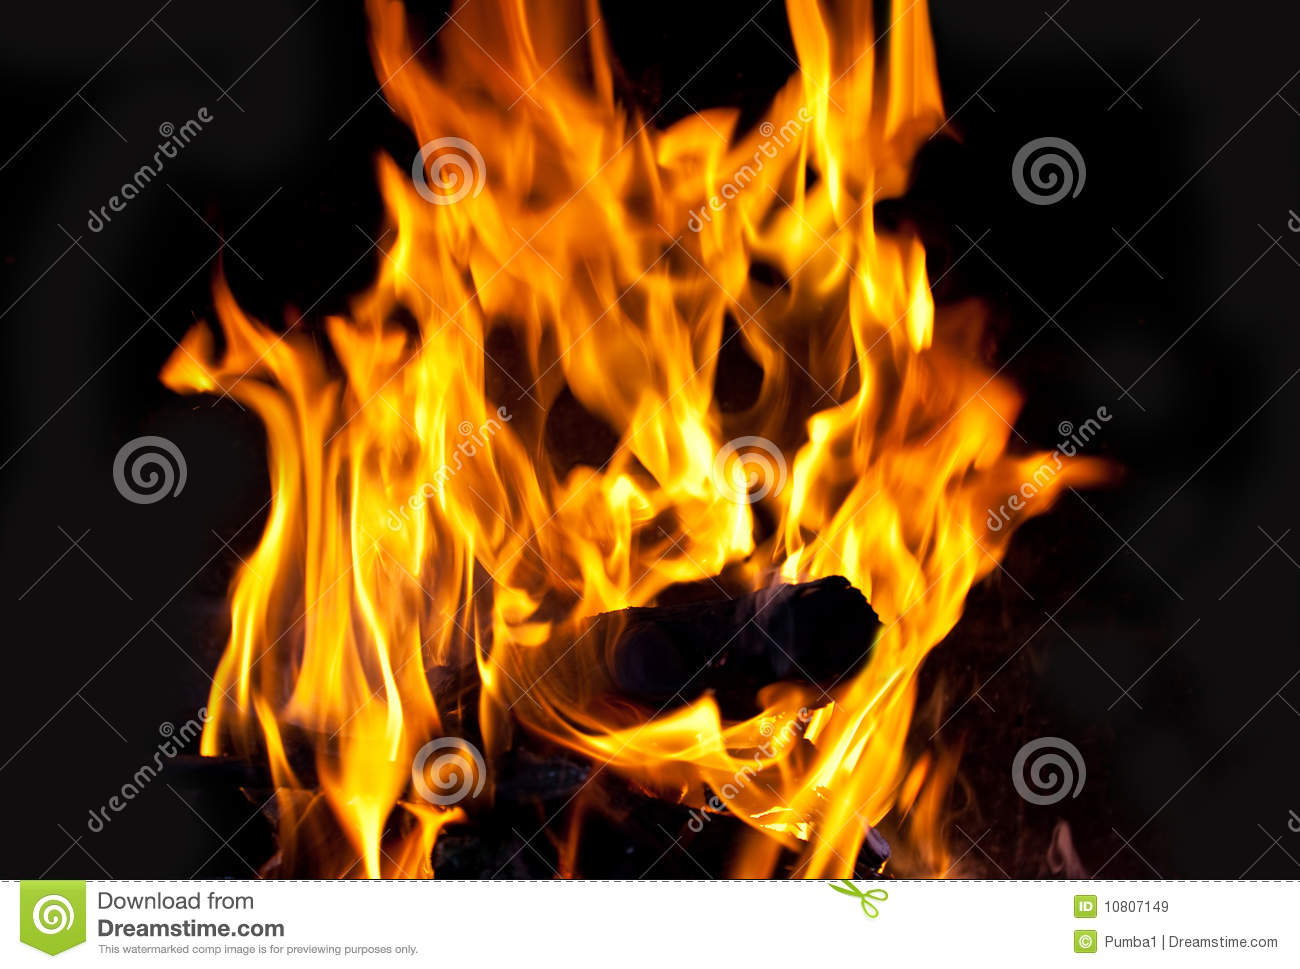 The Face Of A Devil On Fire Stock Image - Image: 10807149